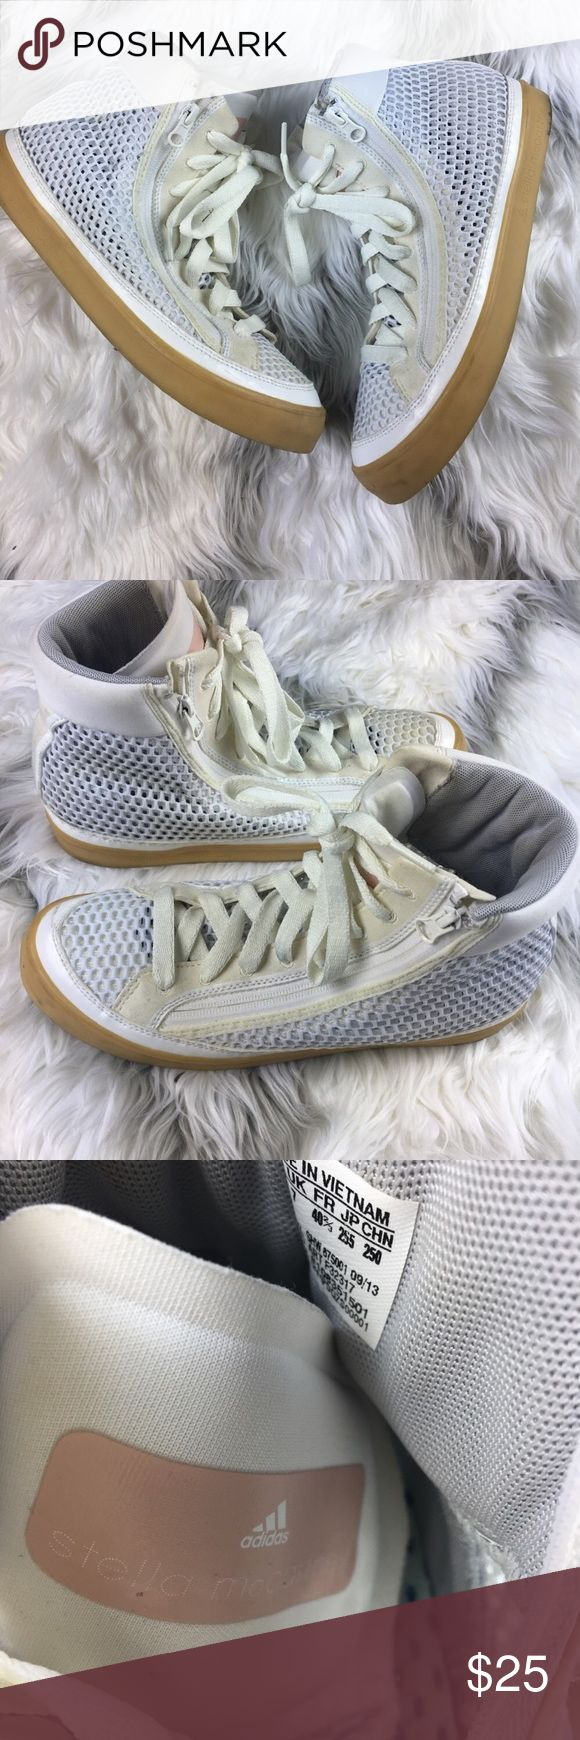 Adias x Stella McCartney Hightop Sneakers. Adias x Stella McCartney Hightop Sneakers. Size 8.5. Mesh detailing. Cute and funky. These are a re-posh. They didn't end up fitting me :(. Adidas by Stella McCartney Shoes Sneakers